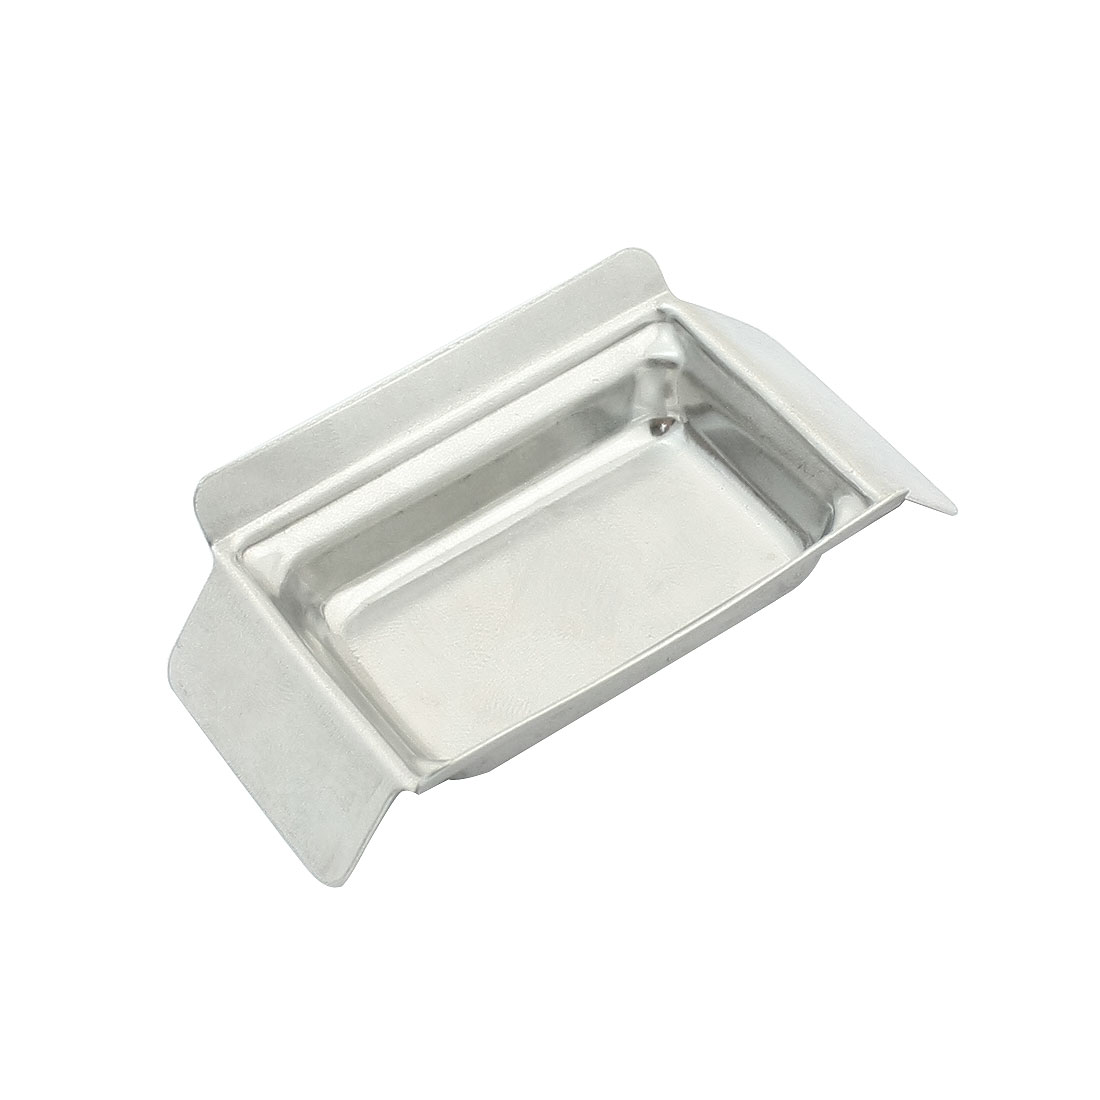 Tissue and Biopsy Embedding and Processing Cassettes Stainless Steel Base Mold 60mm x 37mm x 10mm